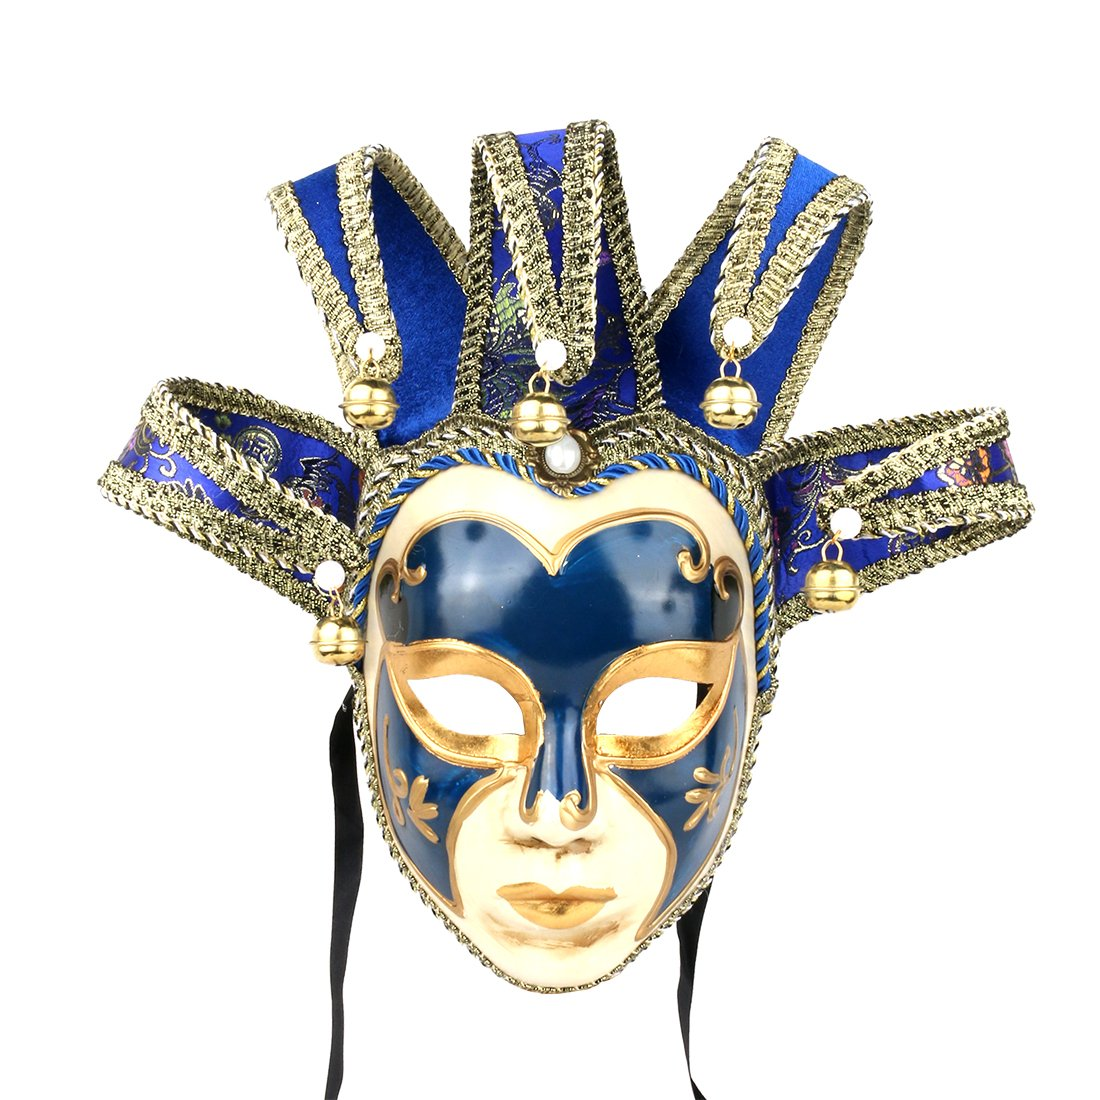 YUFENG Masquerade Jolly Jester Mask Cosplay Mardi Gras Prom Dance Birthday Party Wear or Decor (blue) by YUFENG